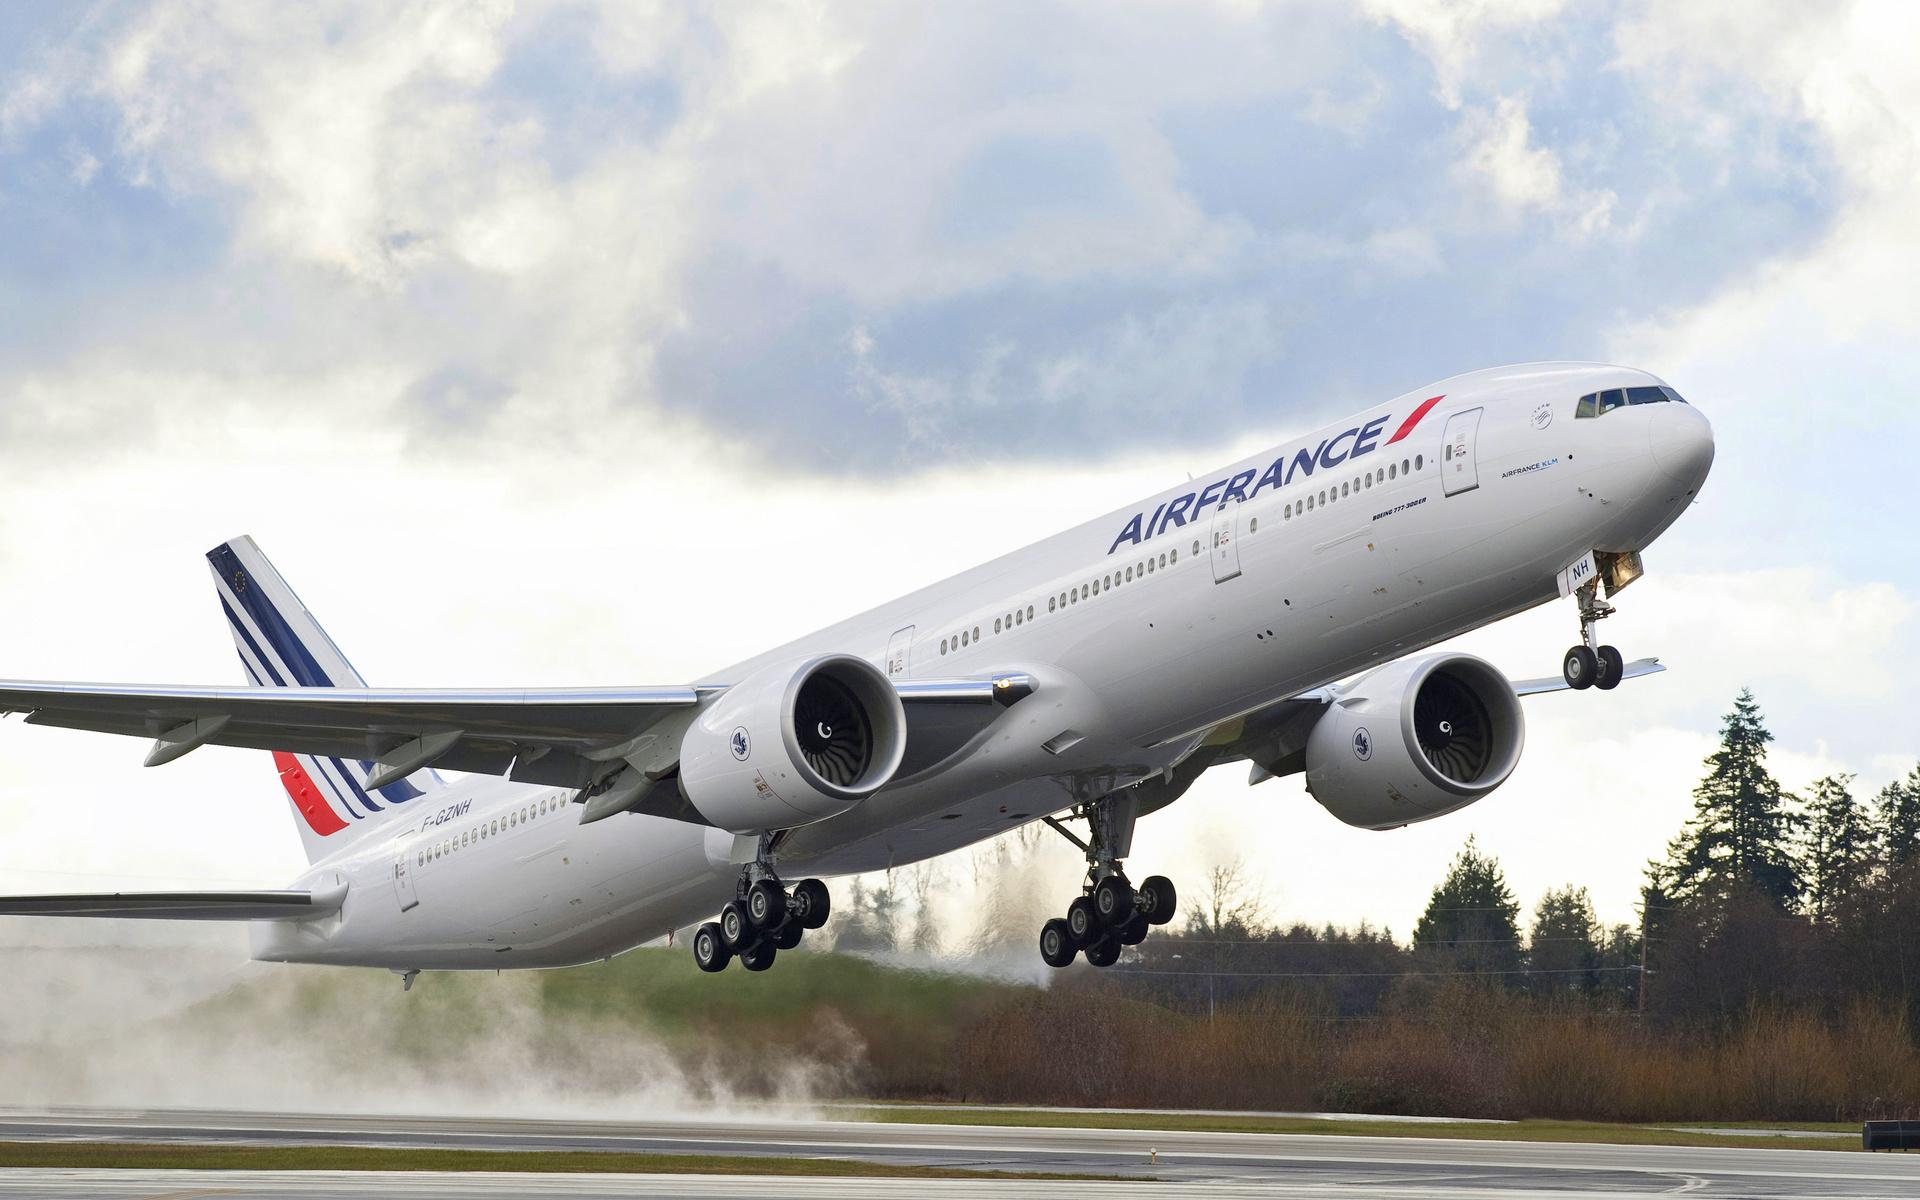 ���� AirFrance 1920x1200